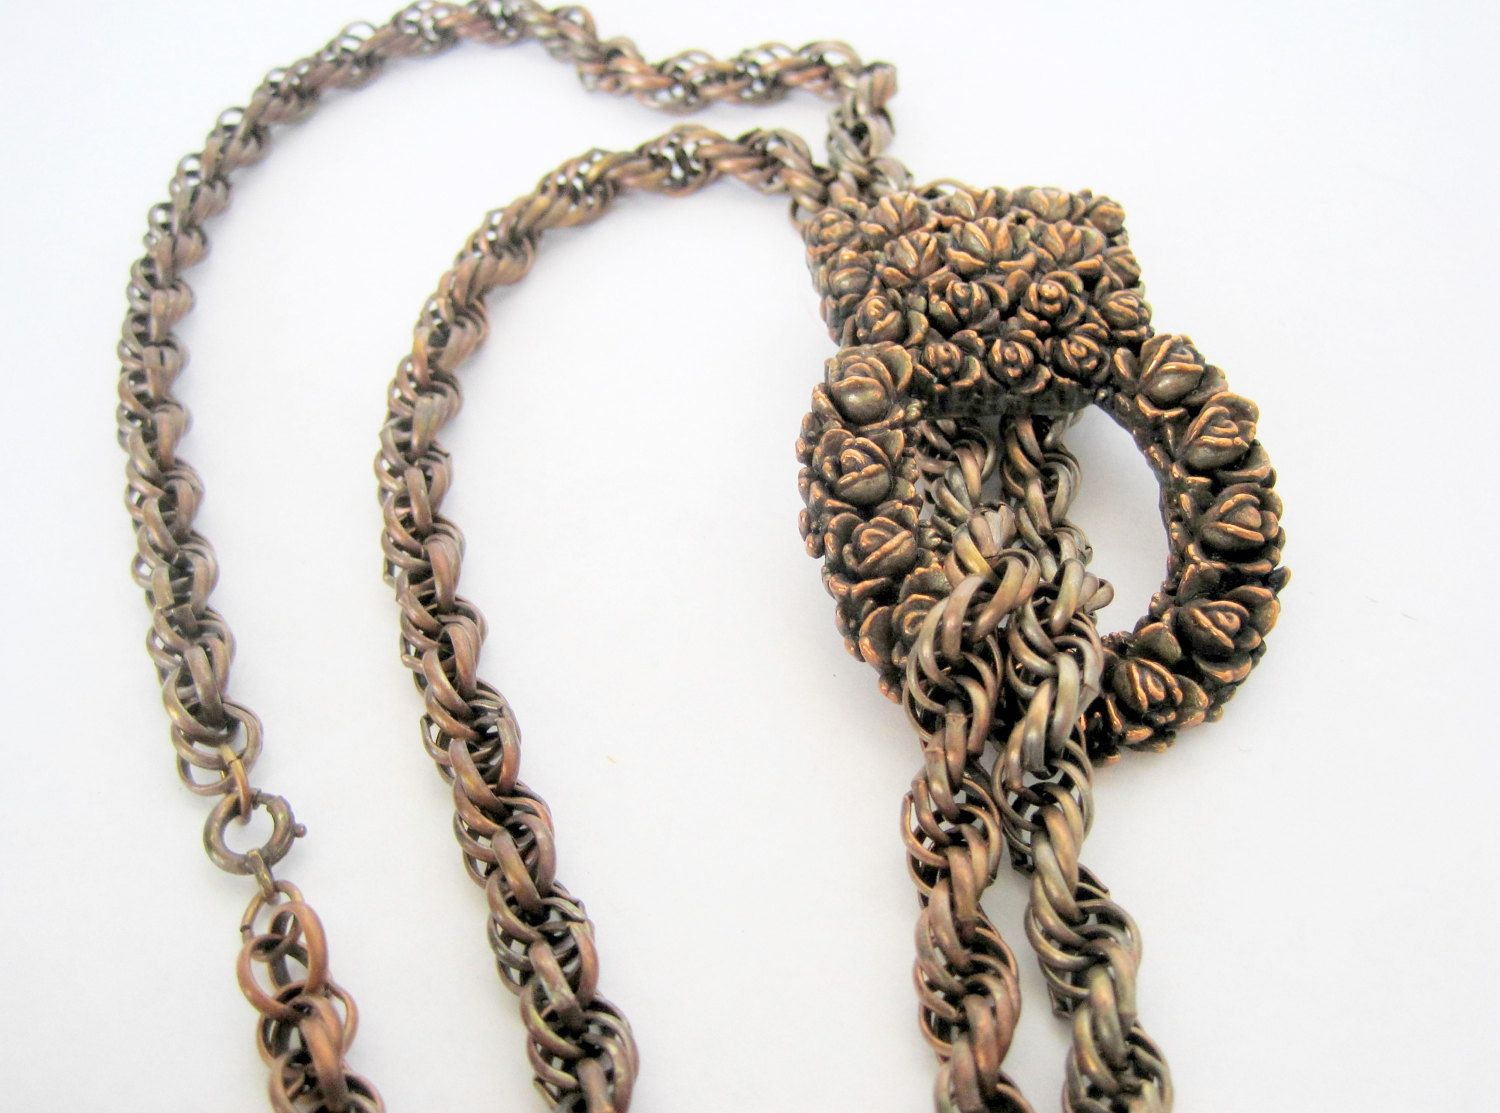 Lovely copper tassel necklace signed A Goodman NYC.  This  copper necklace was created by the compan